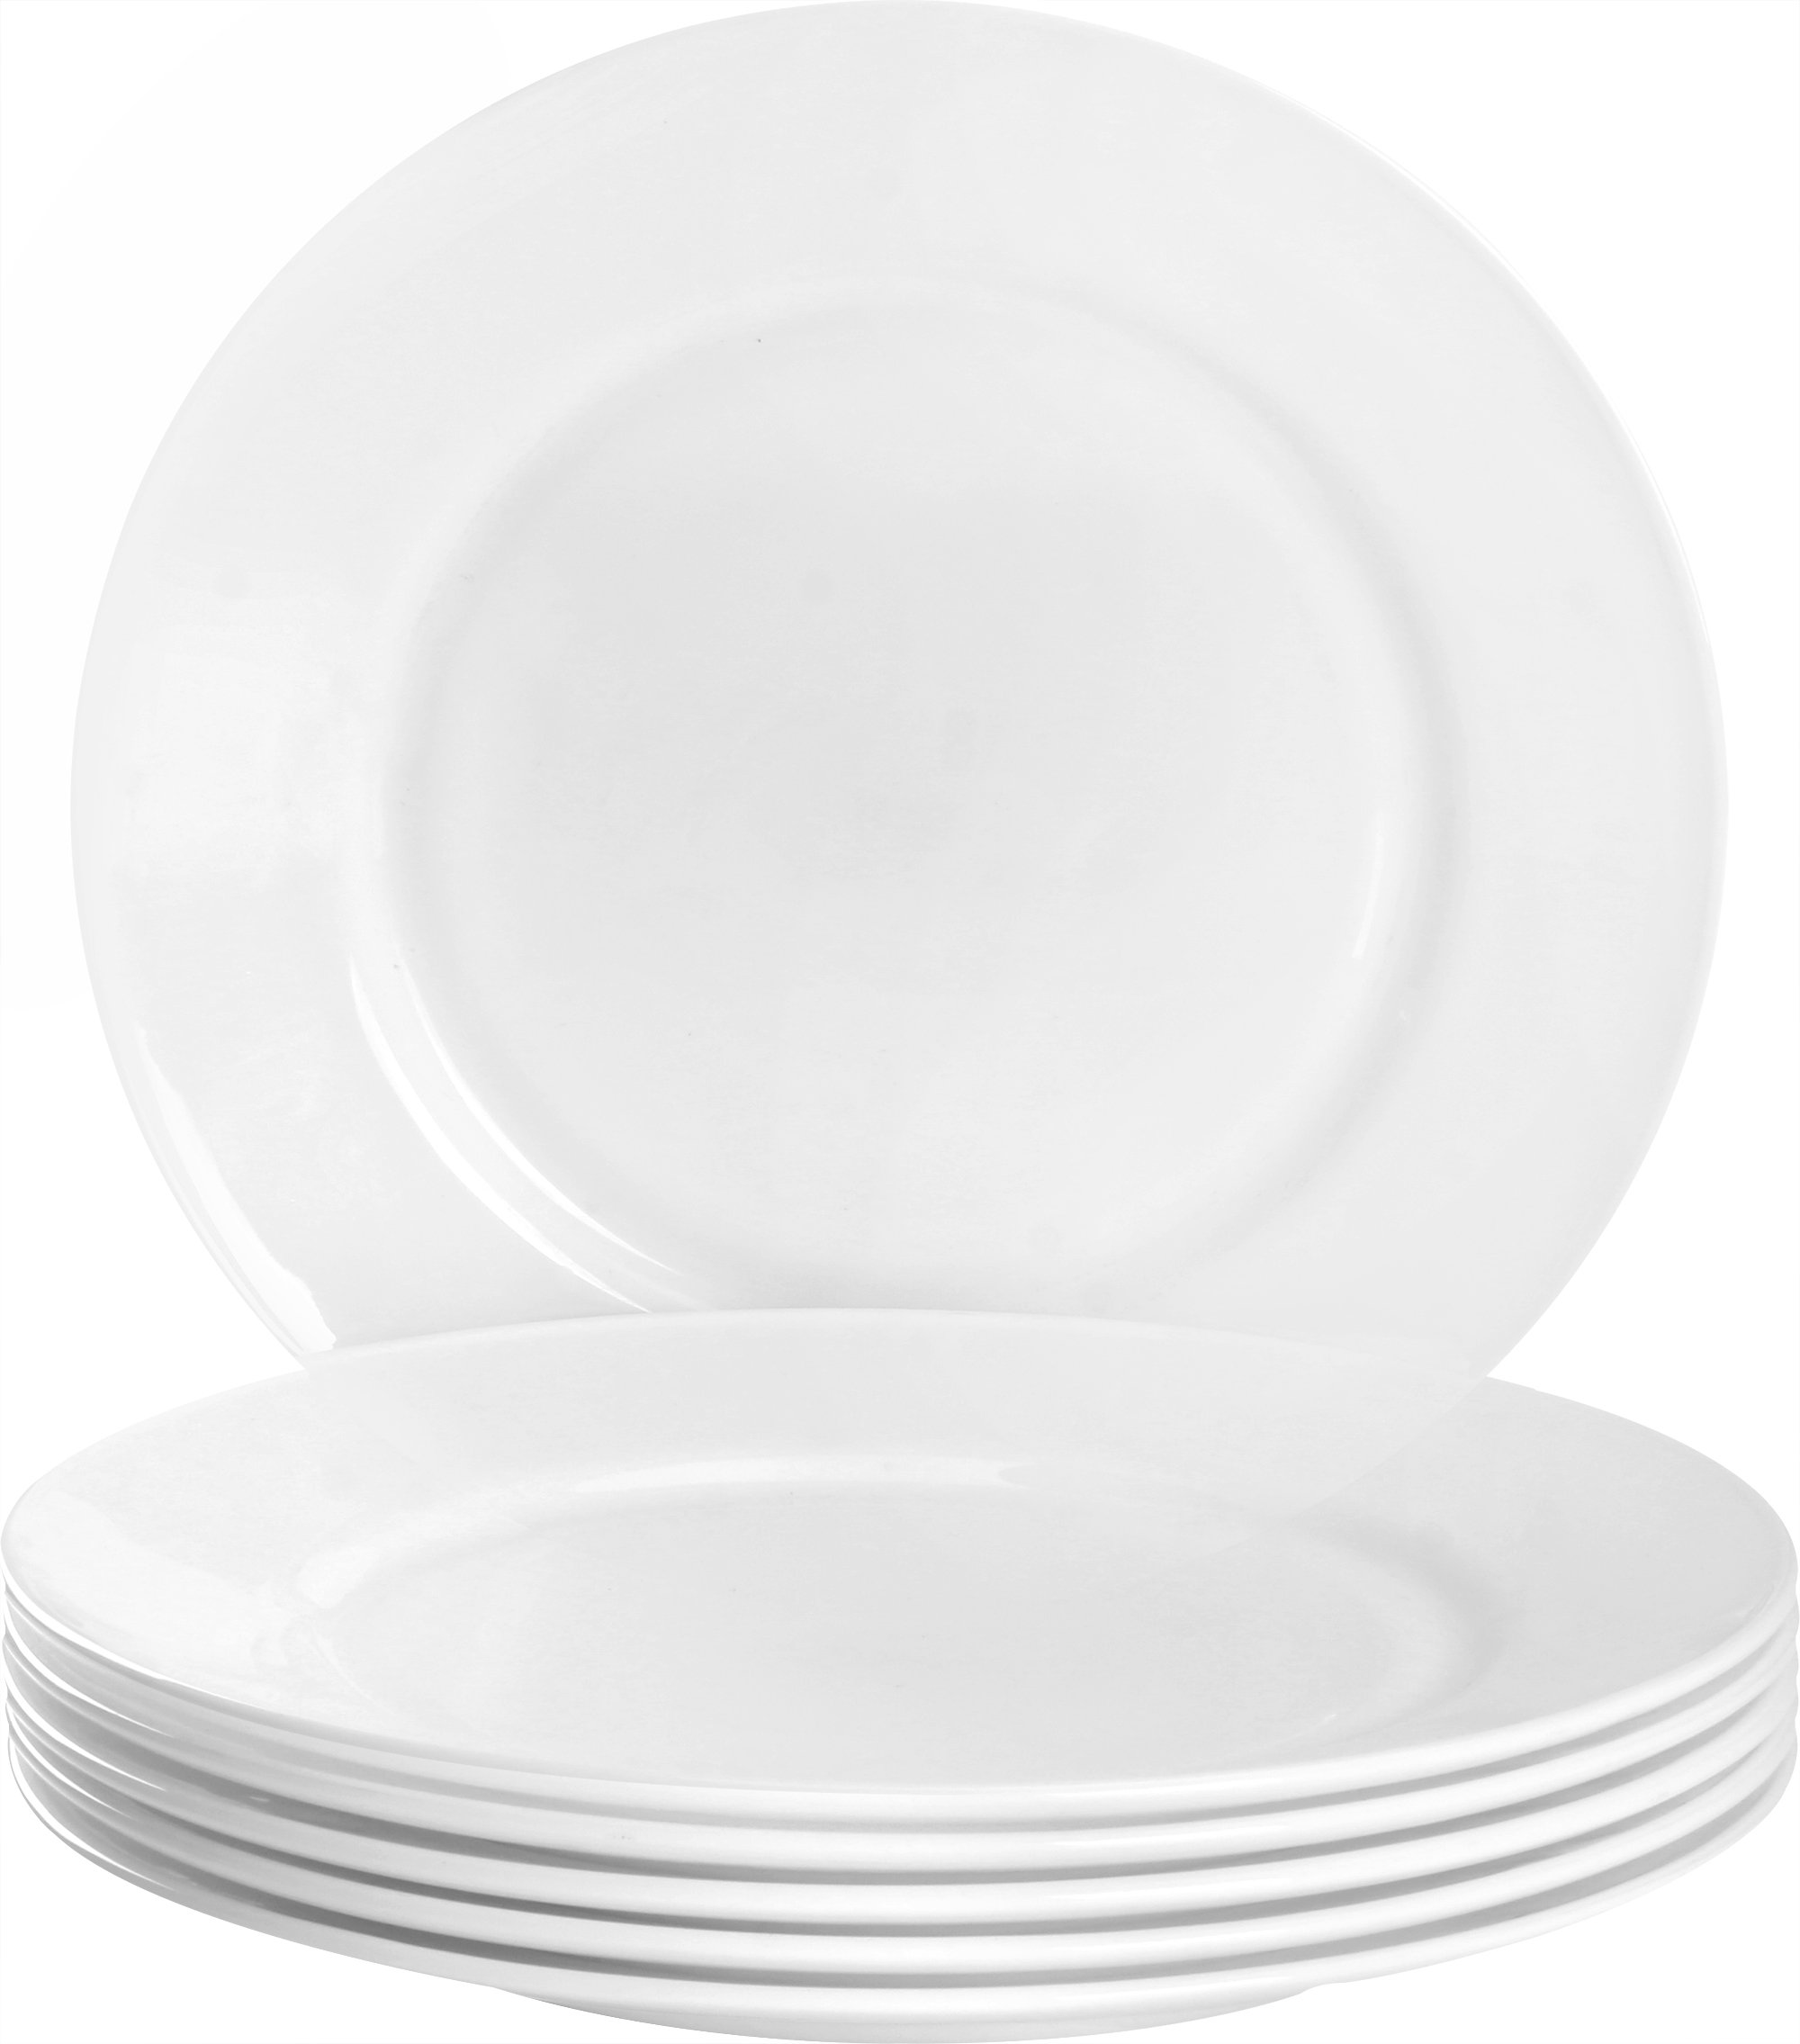 6-Piece Flat Edge Dinning Plate Set 10.5 Inches - Dishwasher Safe Opal Glassware - Microwave/Oven Friendly